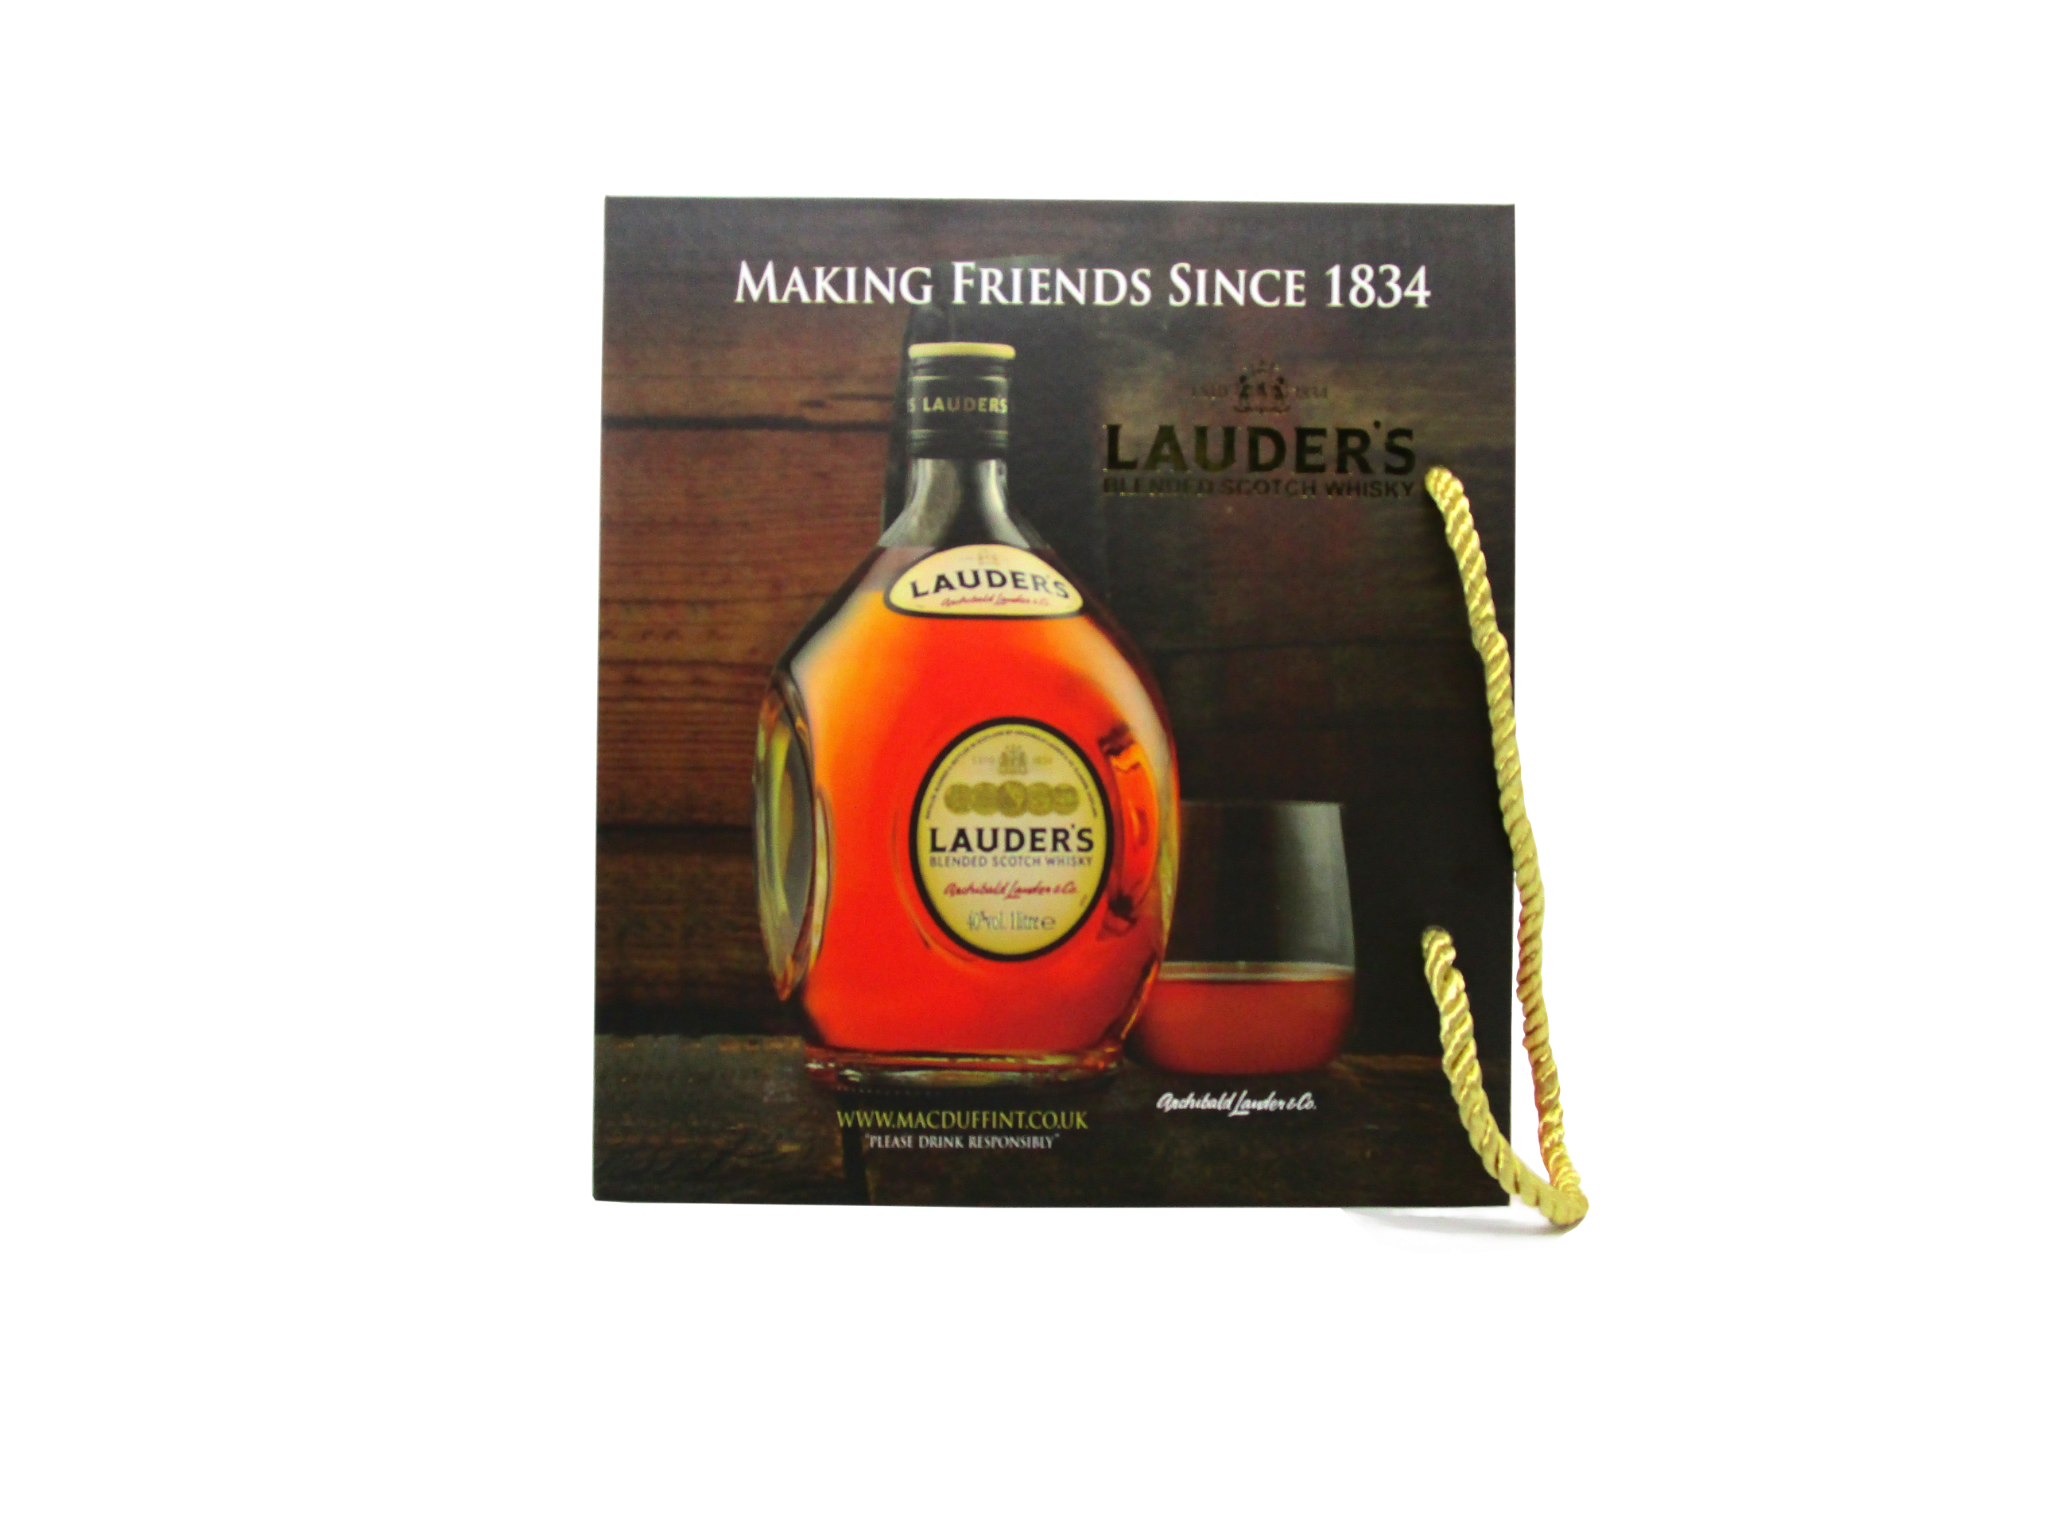 Lauder's Blended Scotch Whisky 700ml 40%